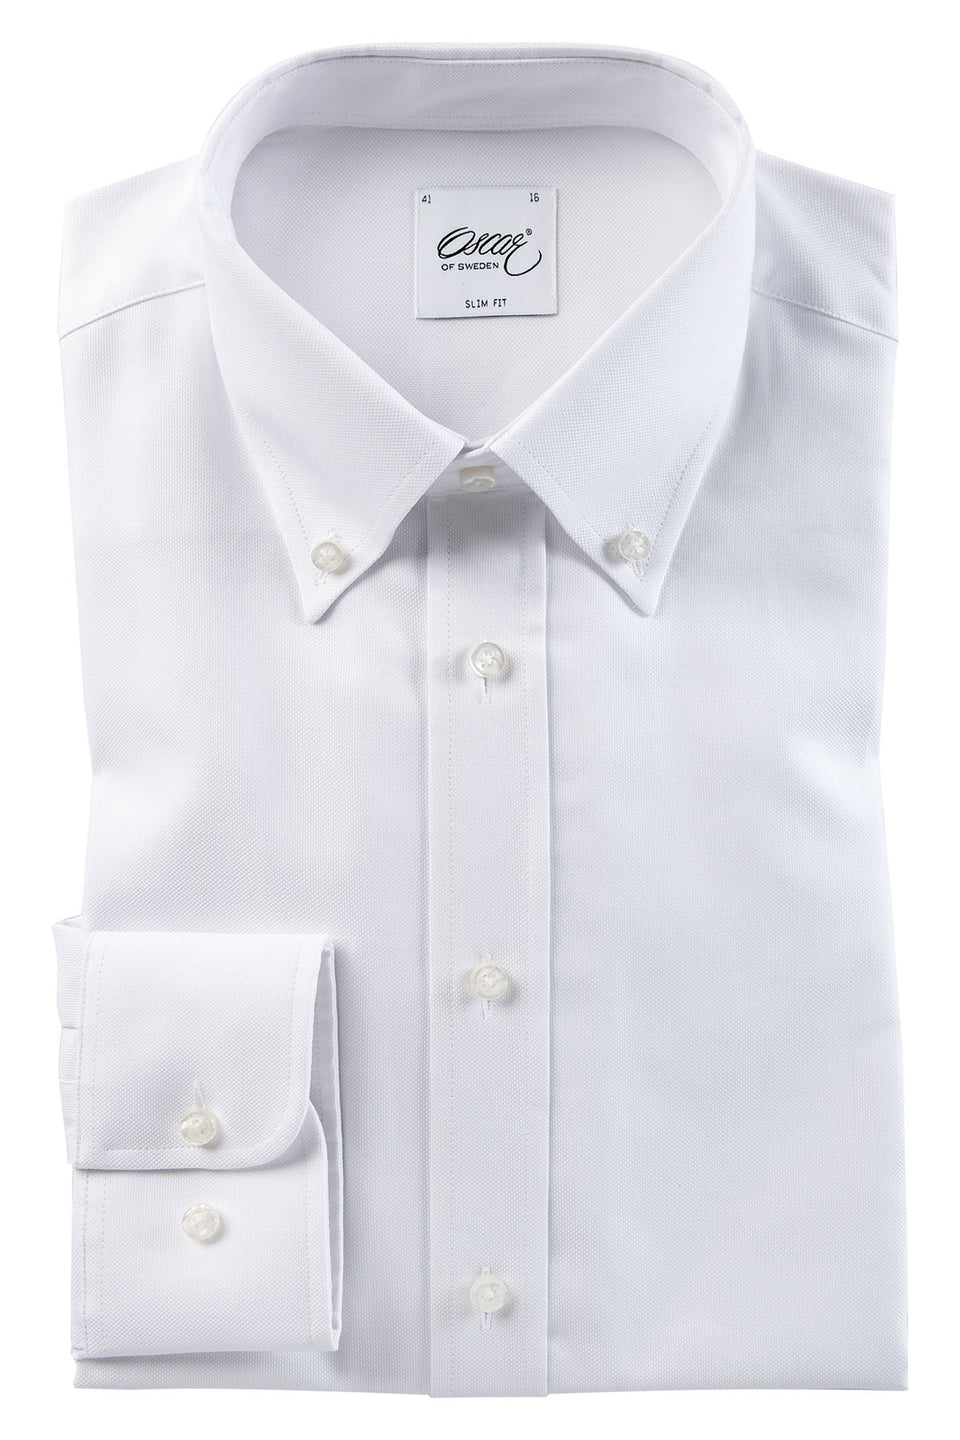 Washed white button-down slim fit shirt